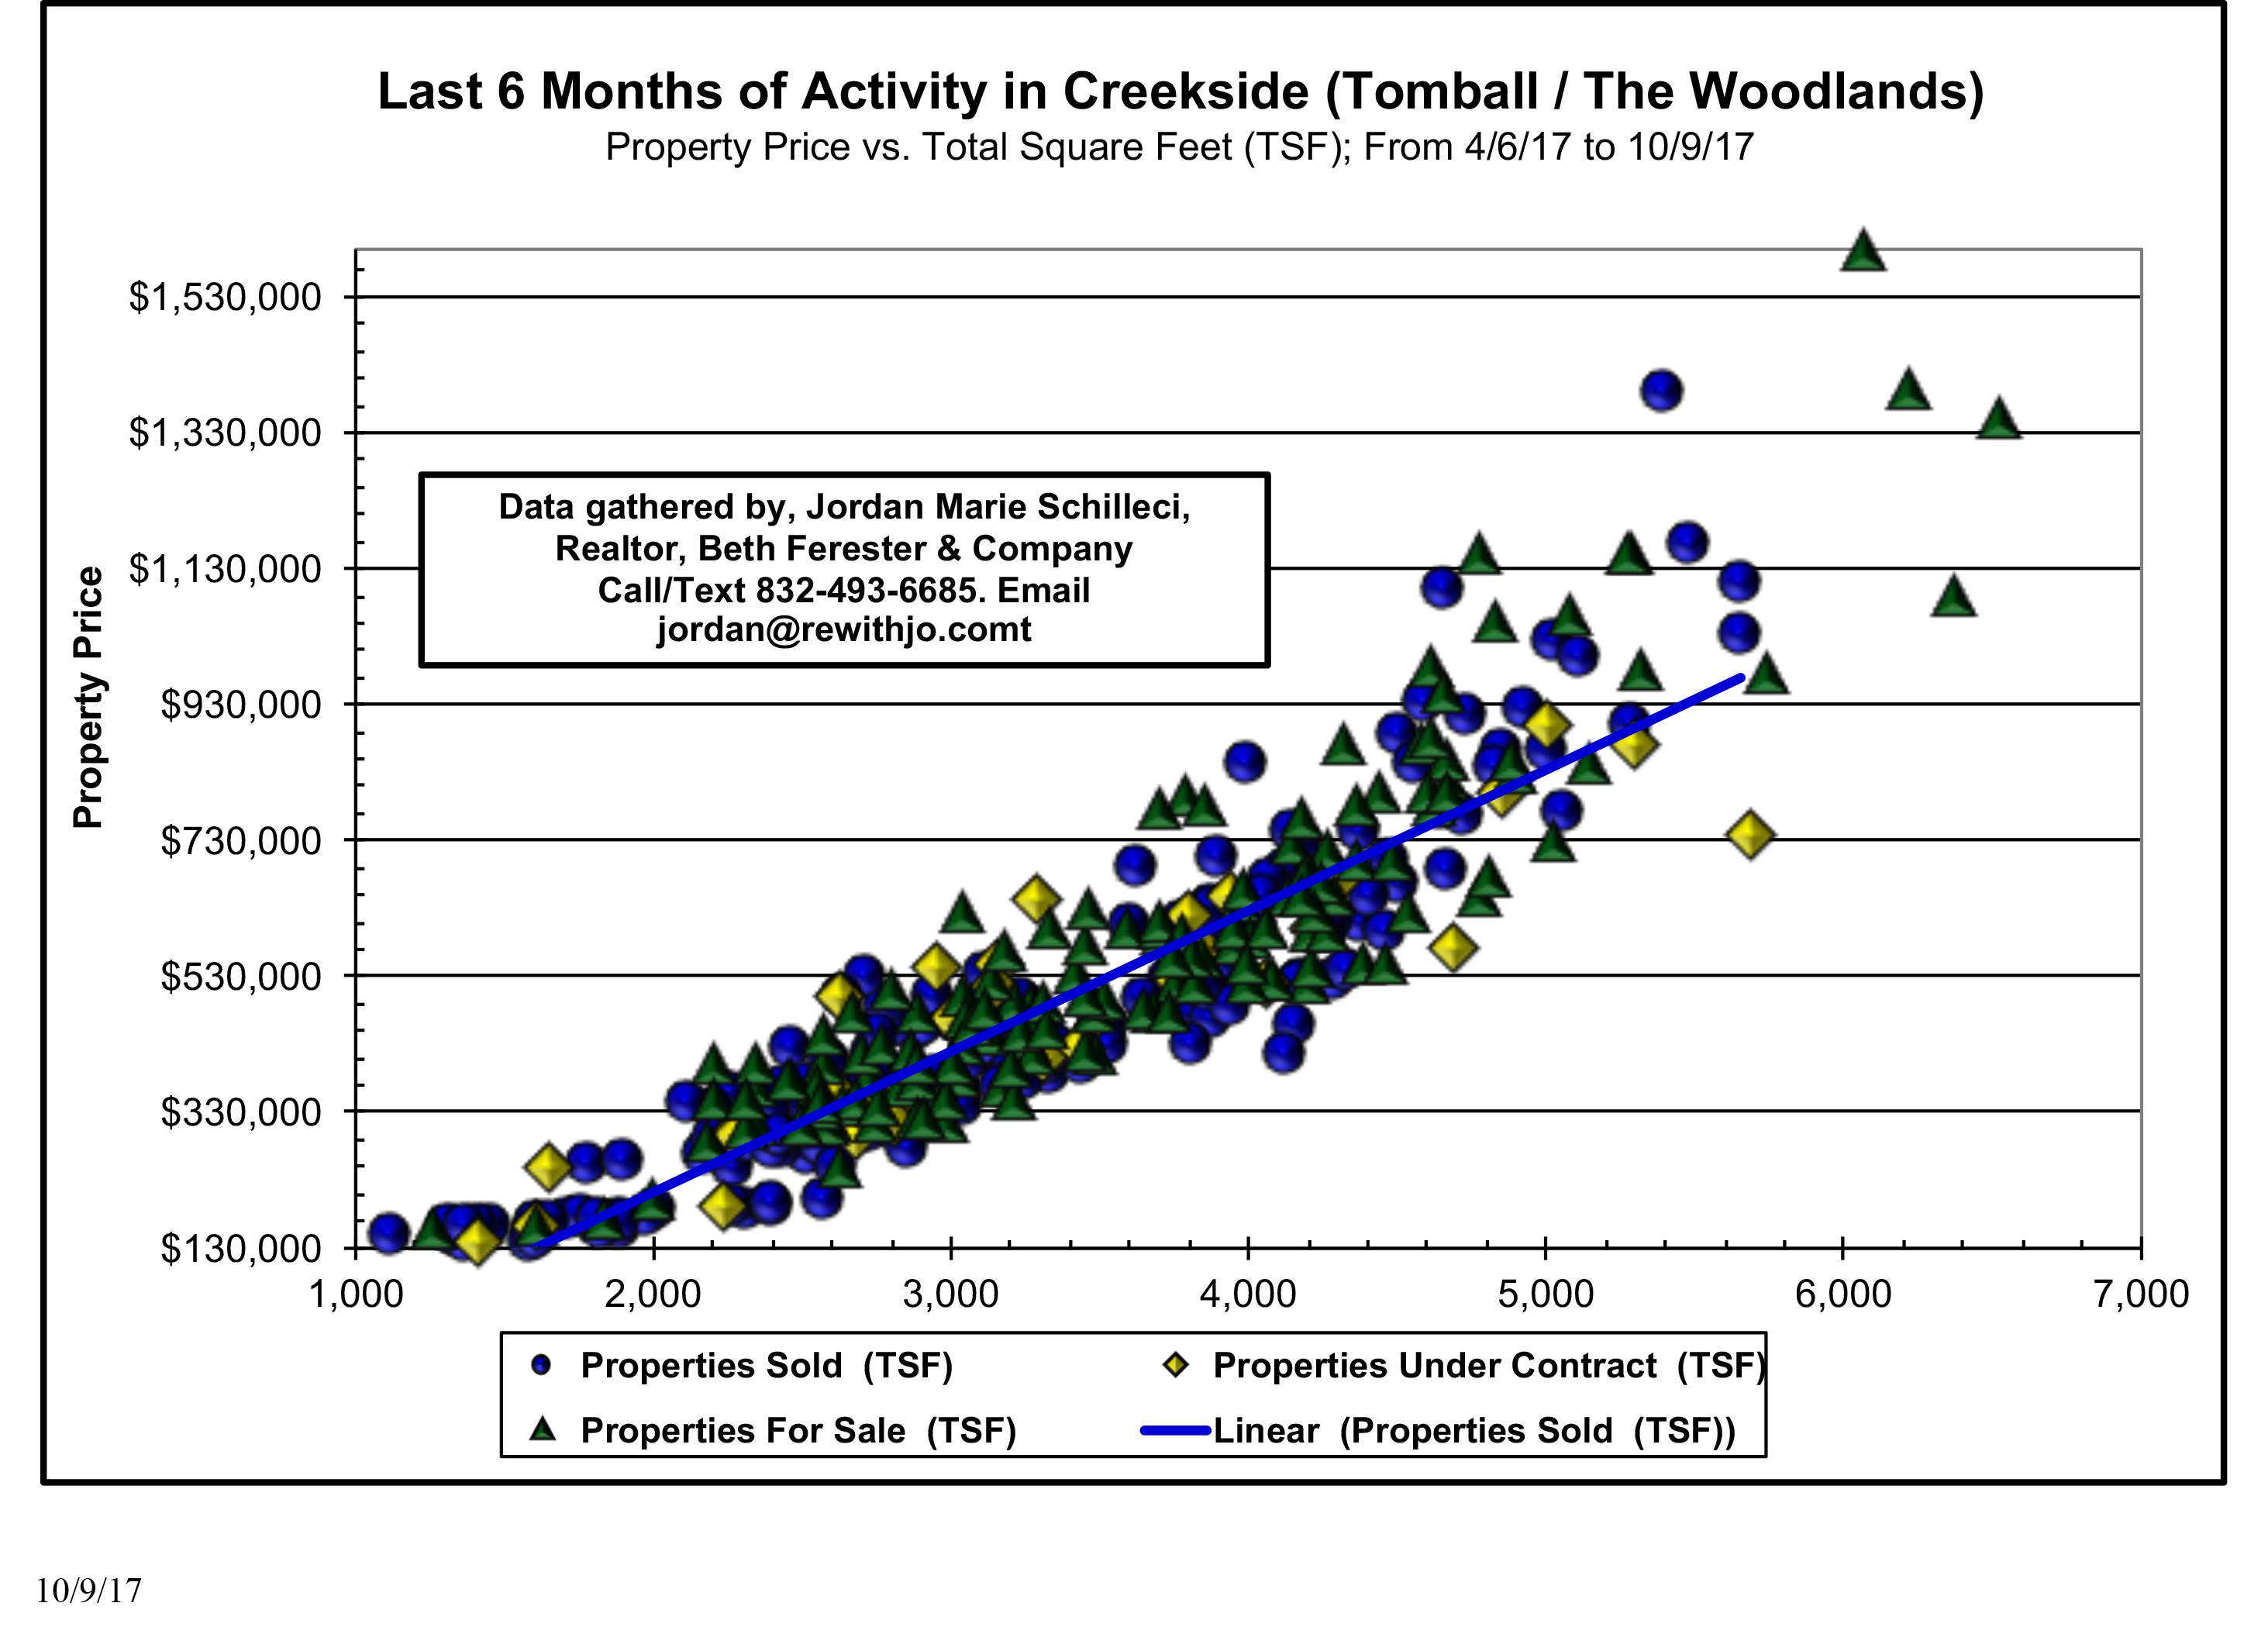 Last 6 Months Creekside Activity Plus Actives